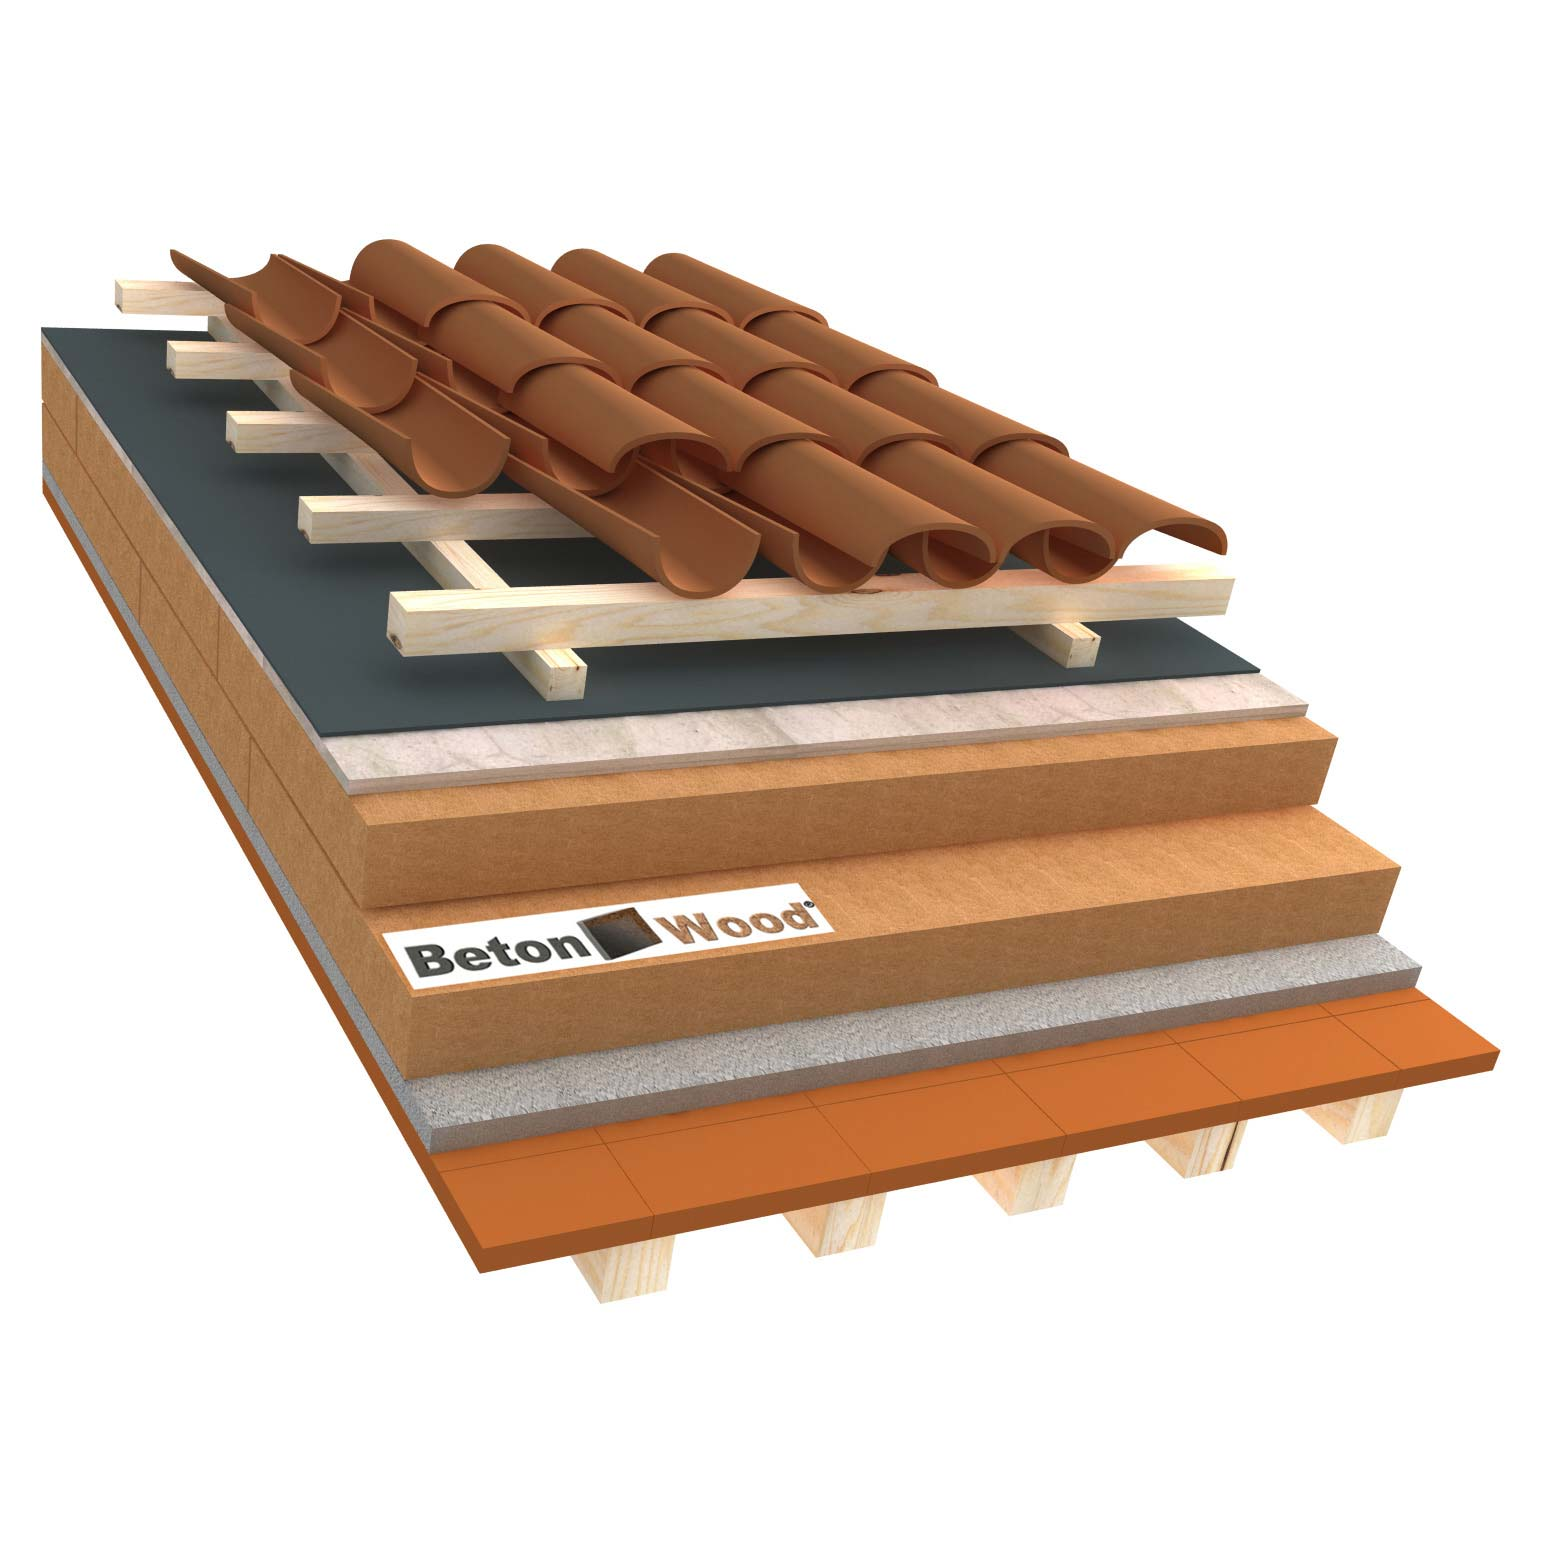 Ventilated roof with wood fiber Special and cement bonded particle boards on terracotta tiles